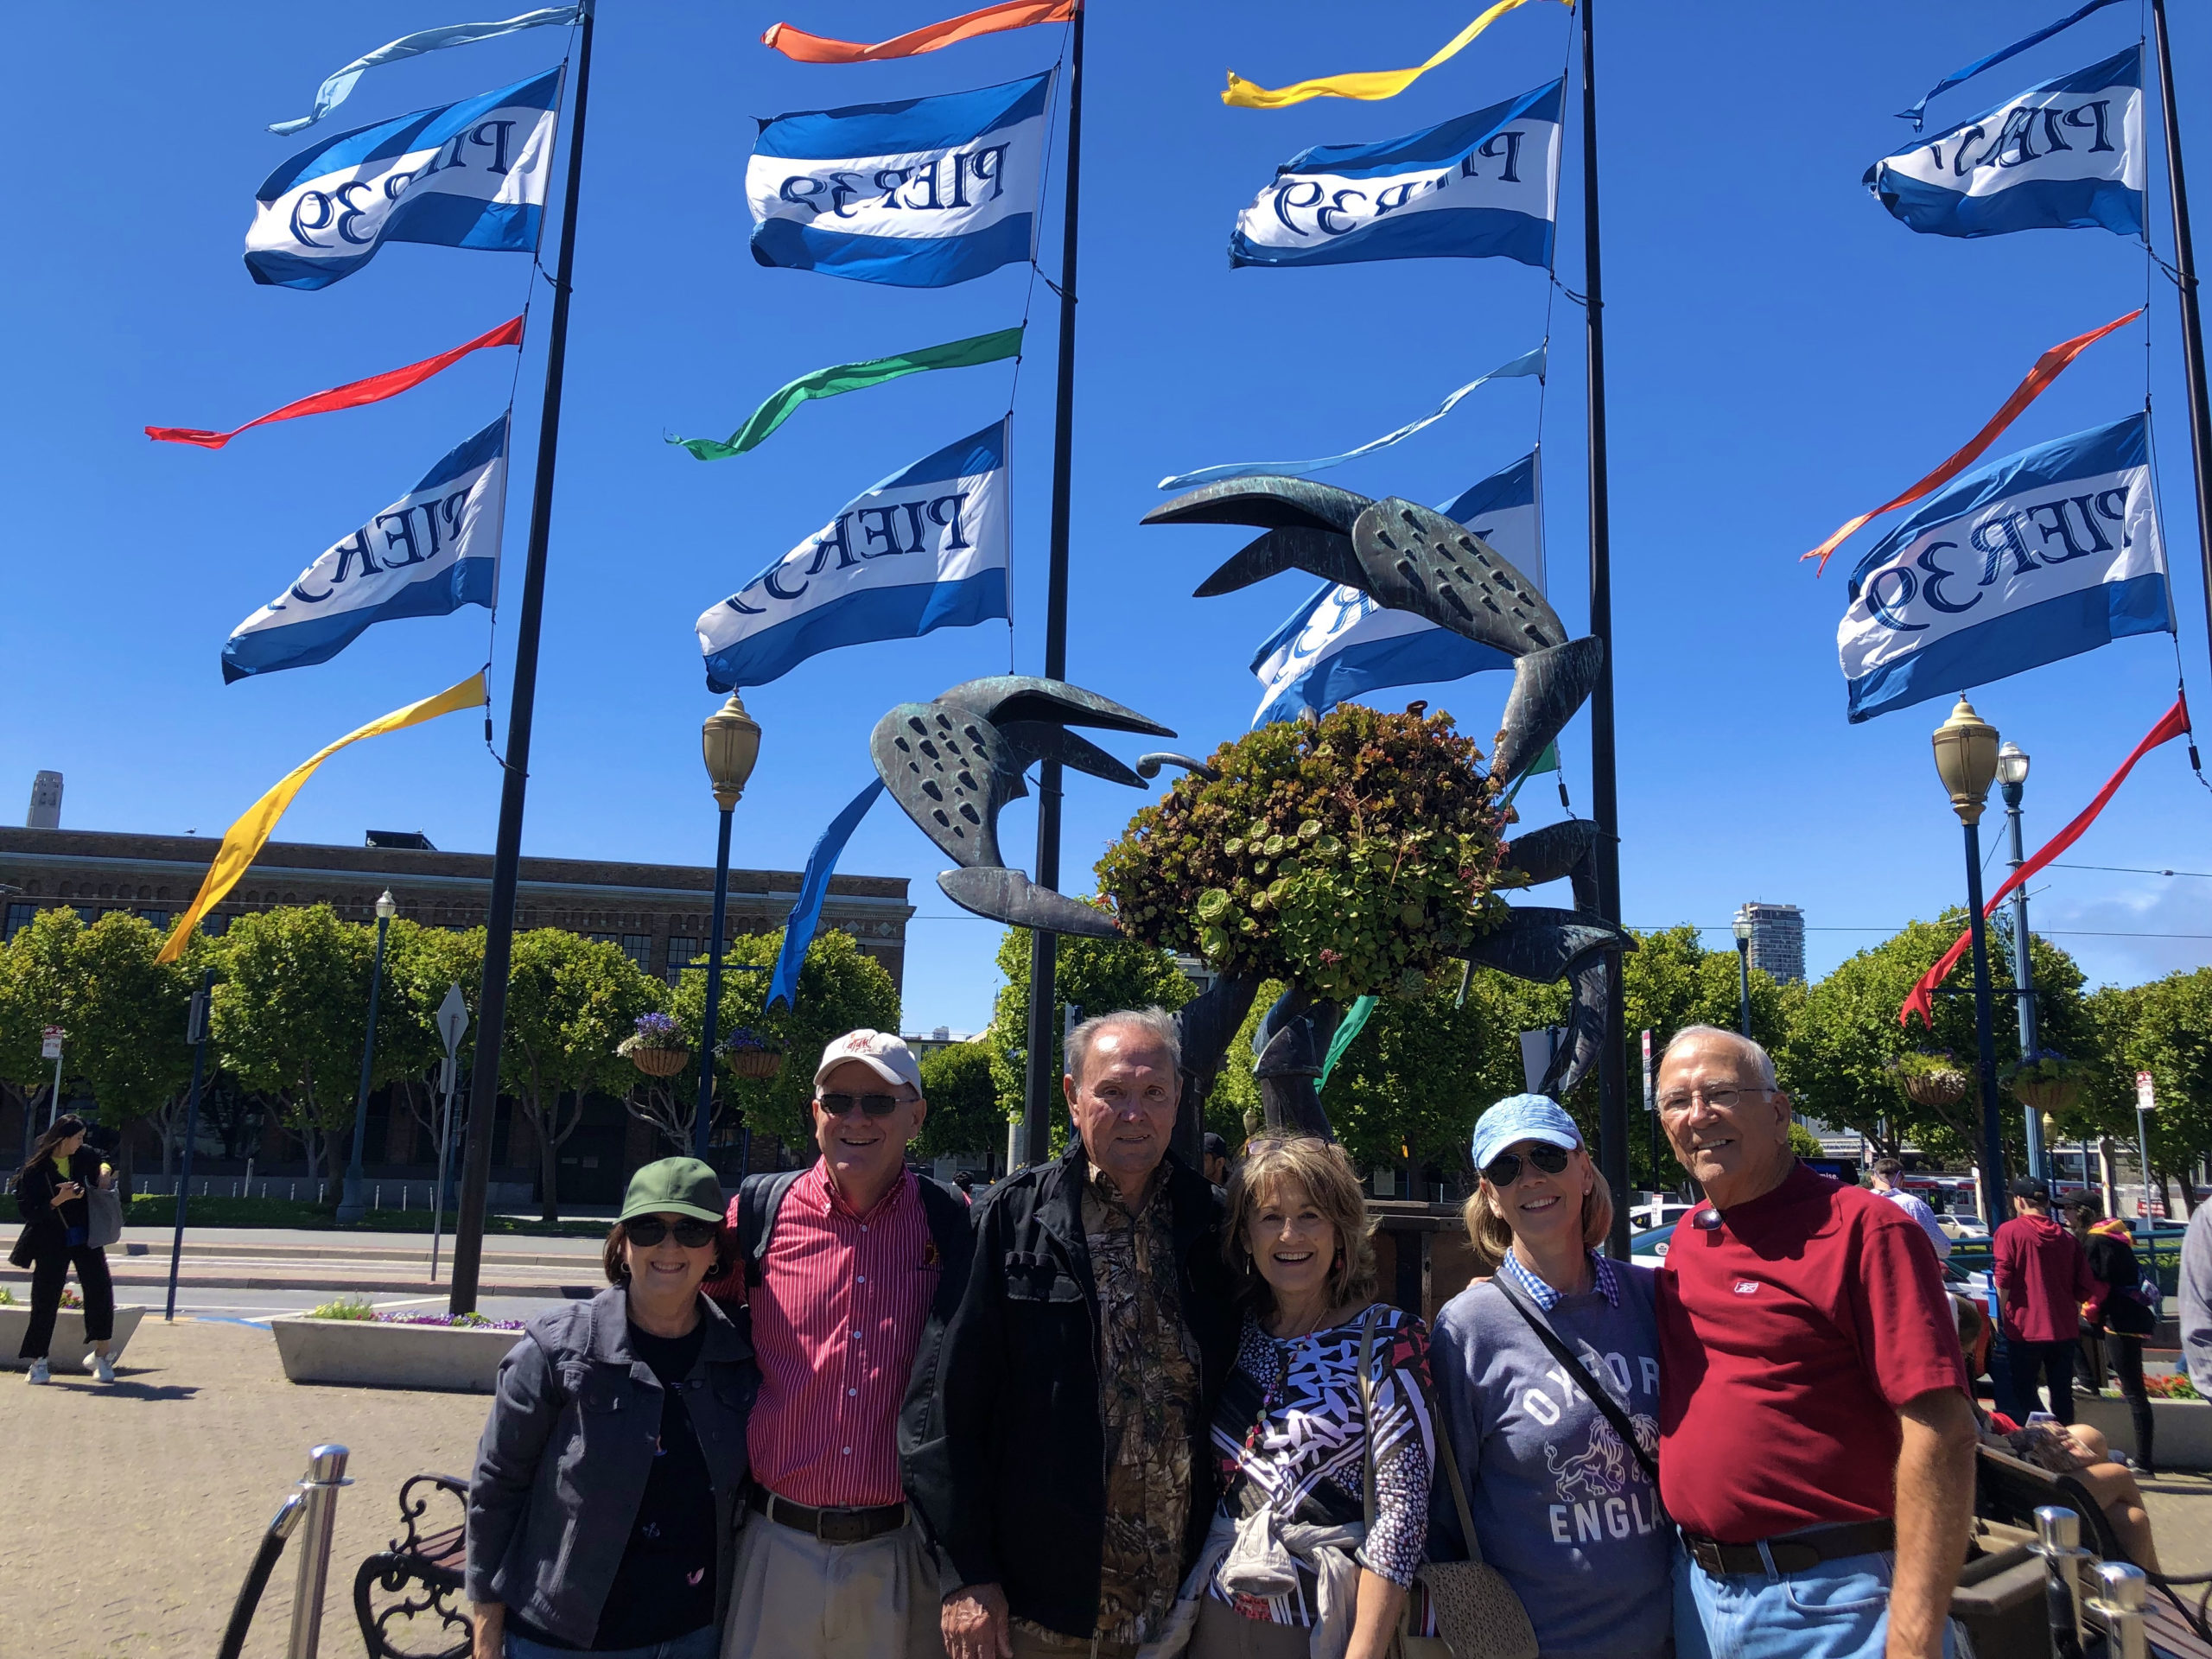 ExperienceFirst tour group at Pier 39 for the Fisherman's Wharf Walking Tour